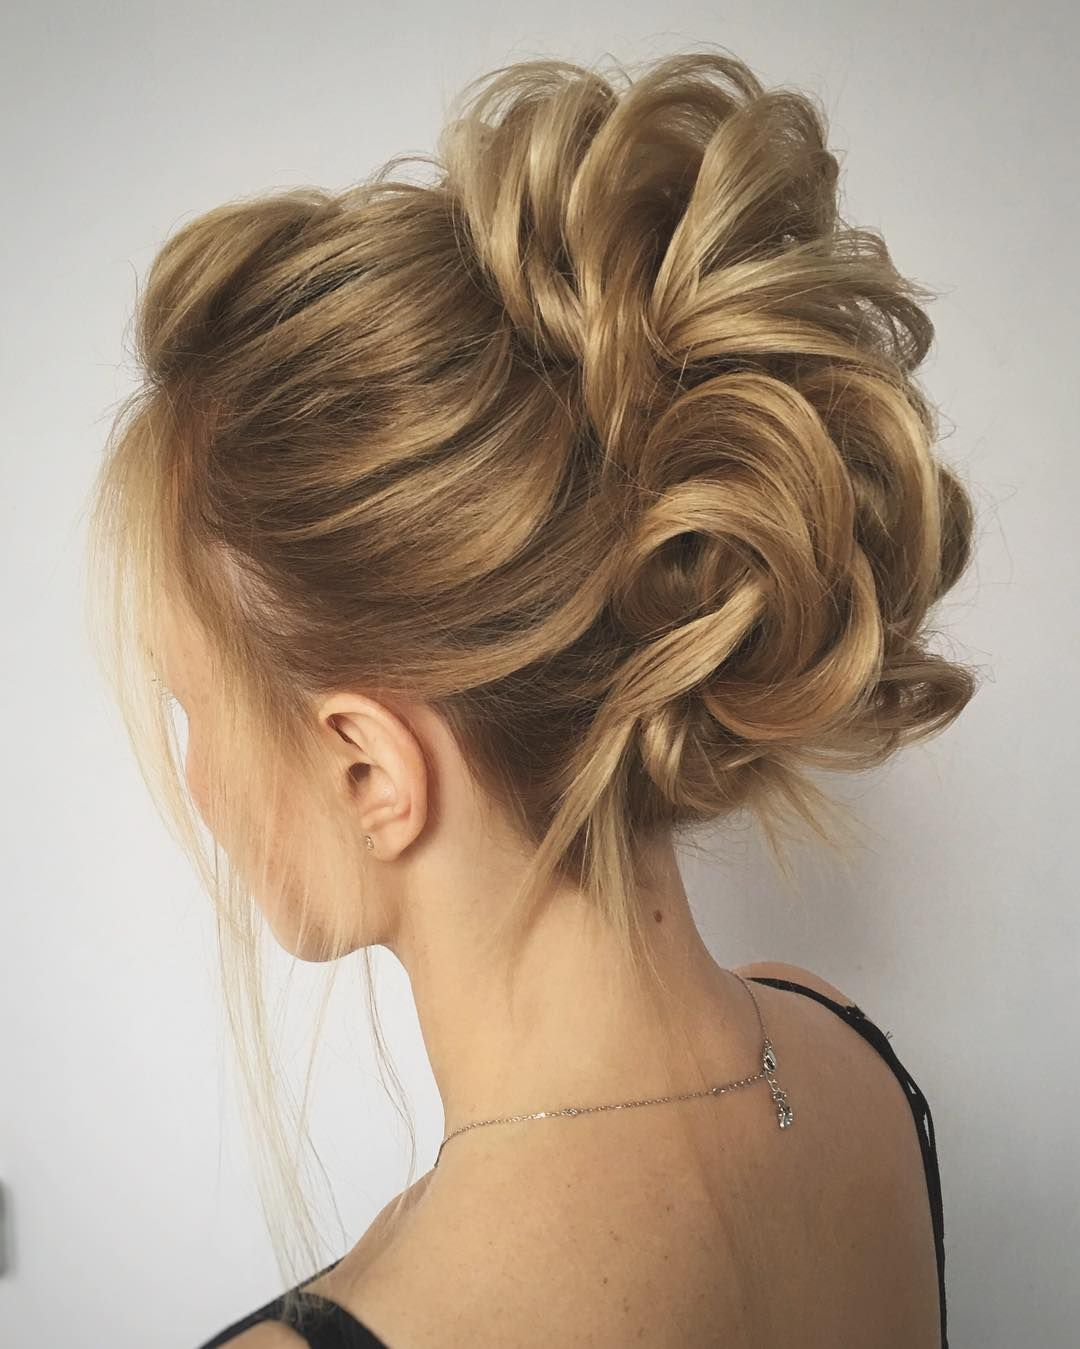 #updo#hairdo#hairstyle#upstyle#wedding#weddinghair #weddingupdo #bride.  Wedding Hair StylesLong ...